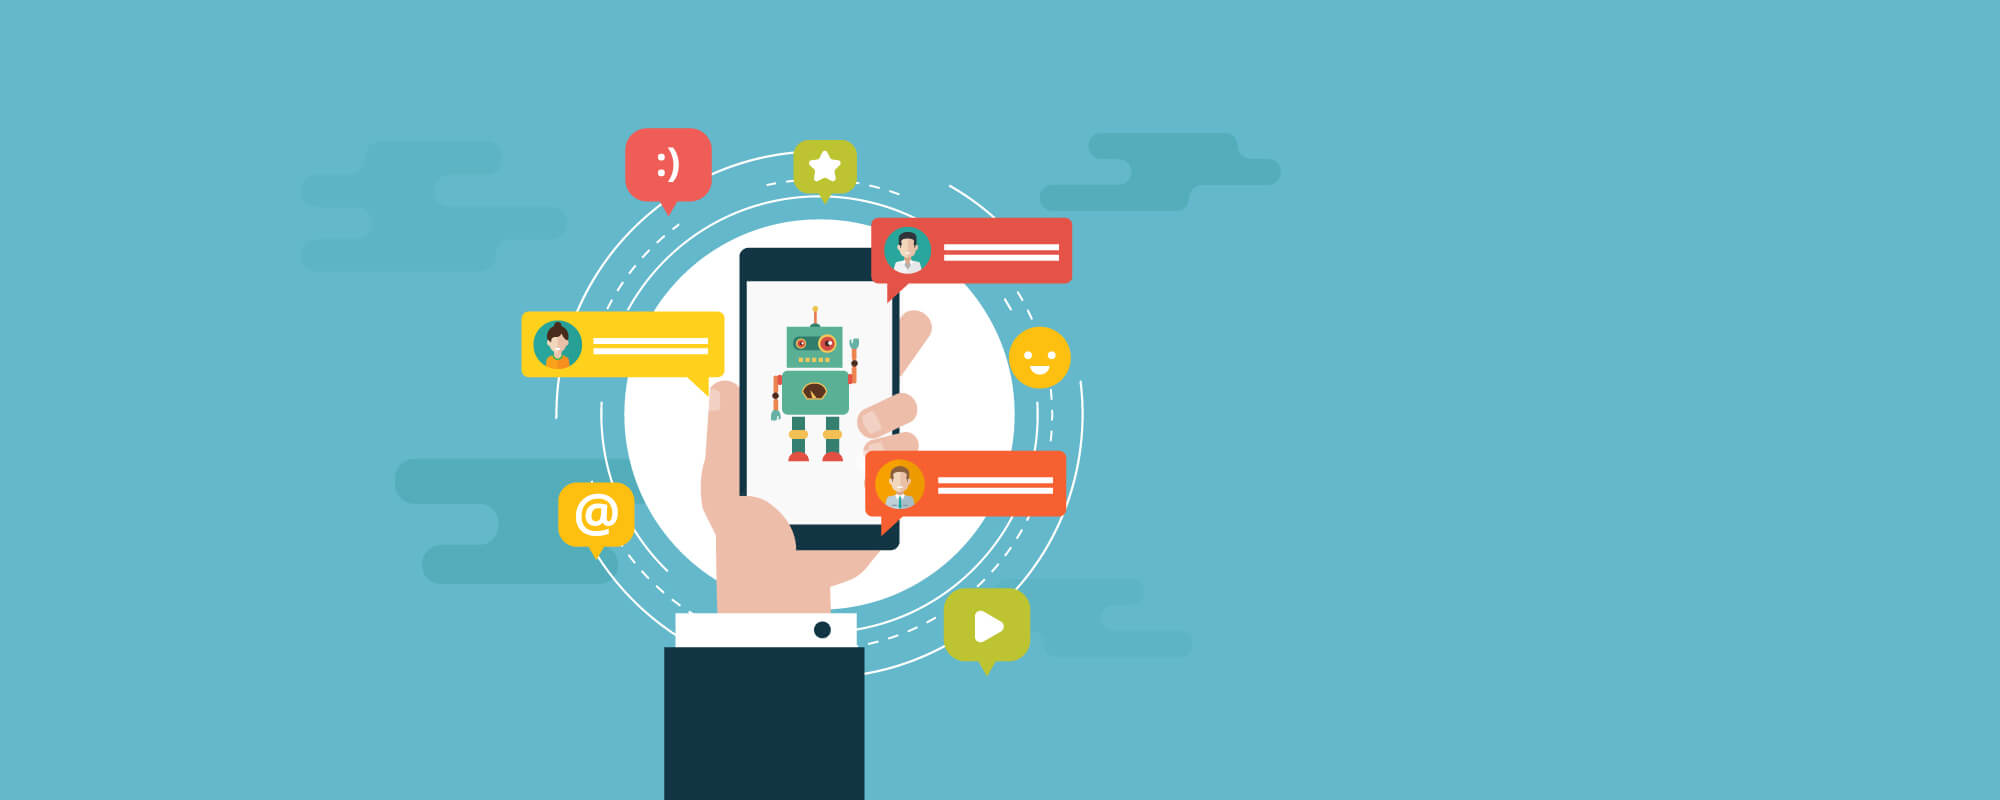 4 simple steps to designing the chatbots of the future